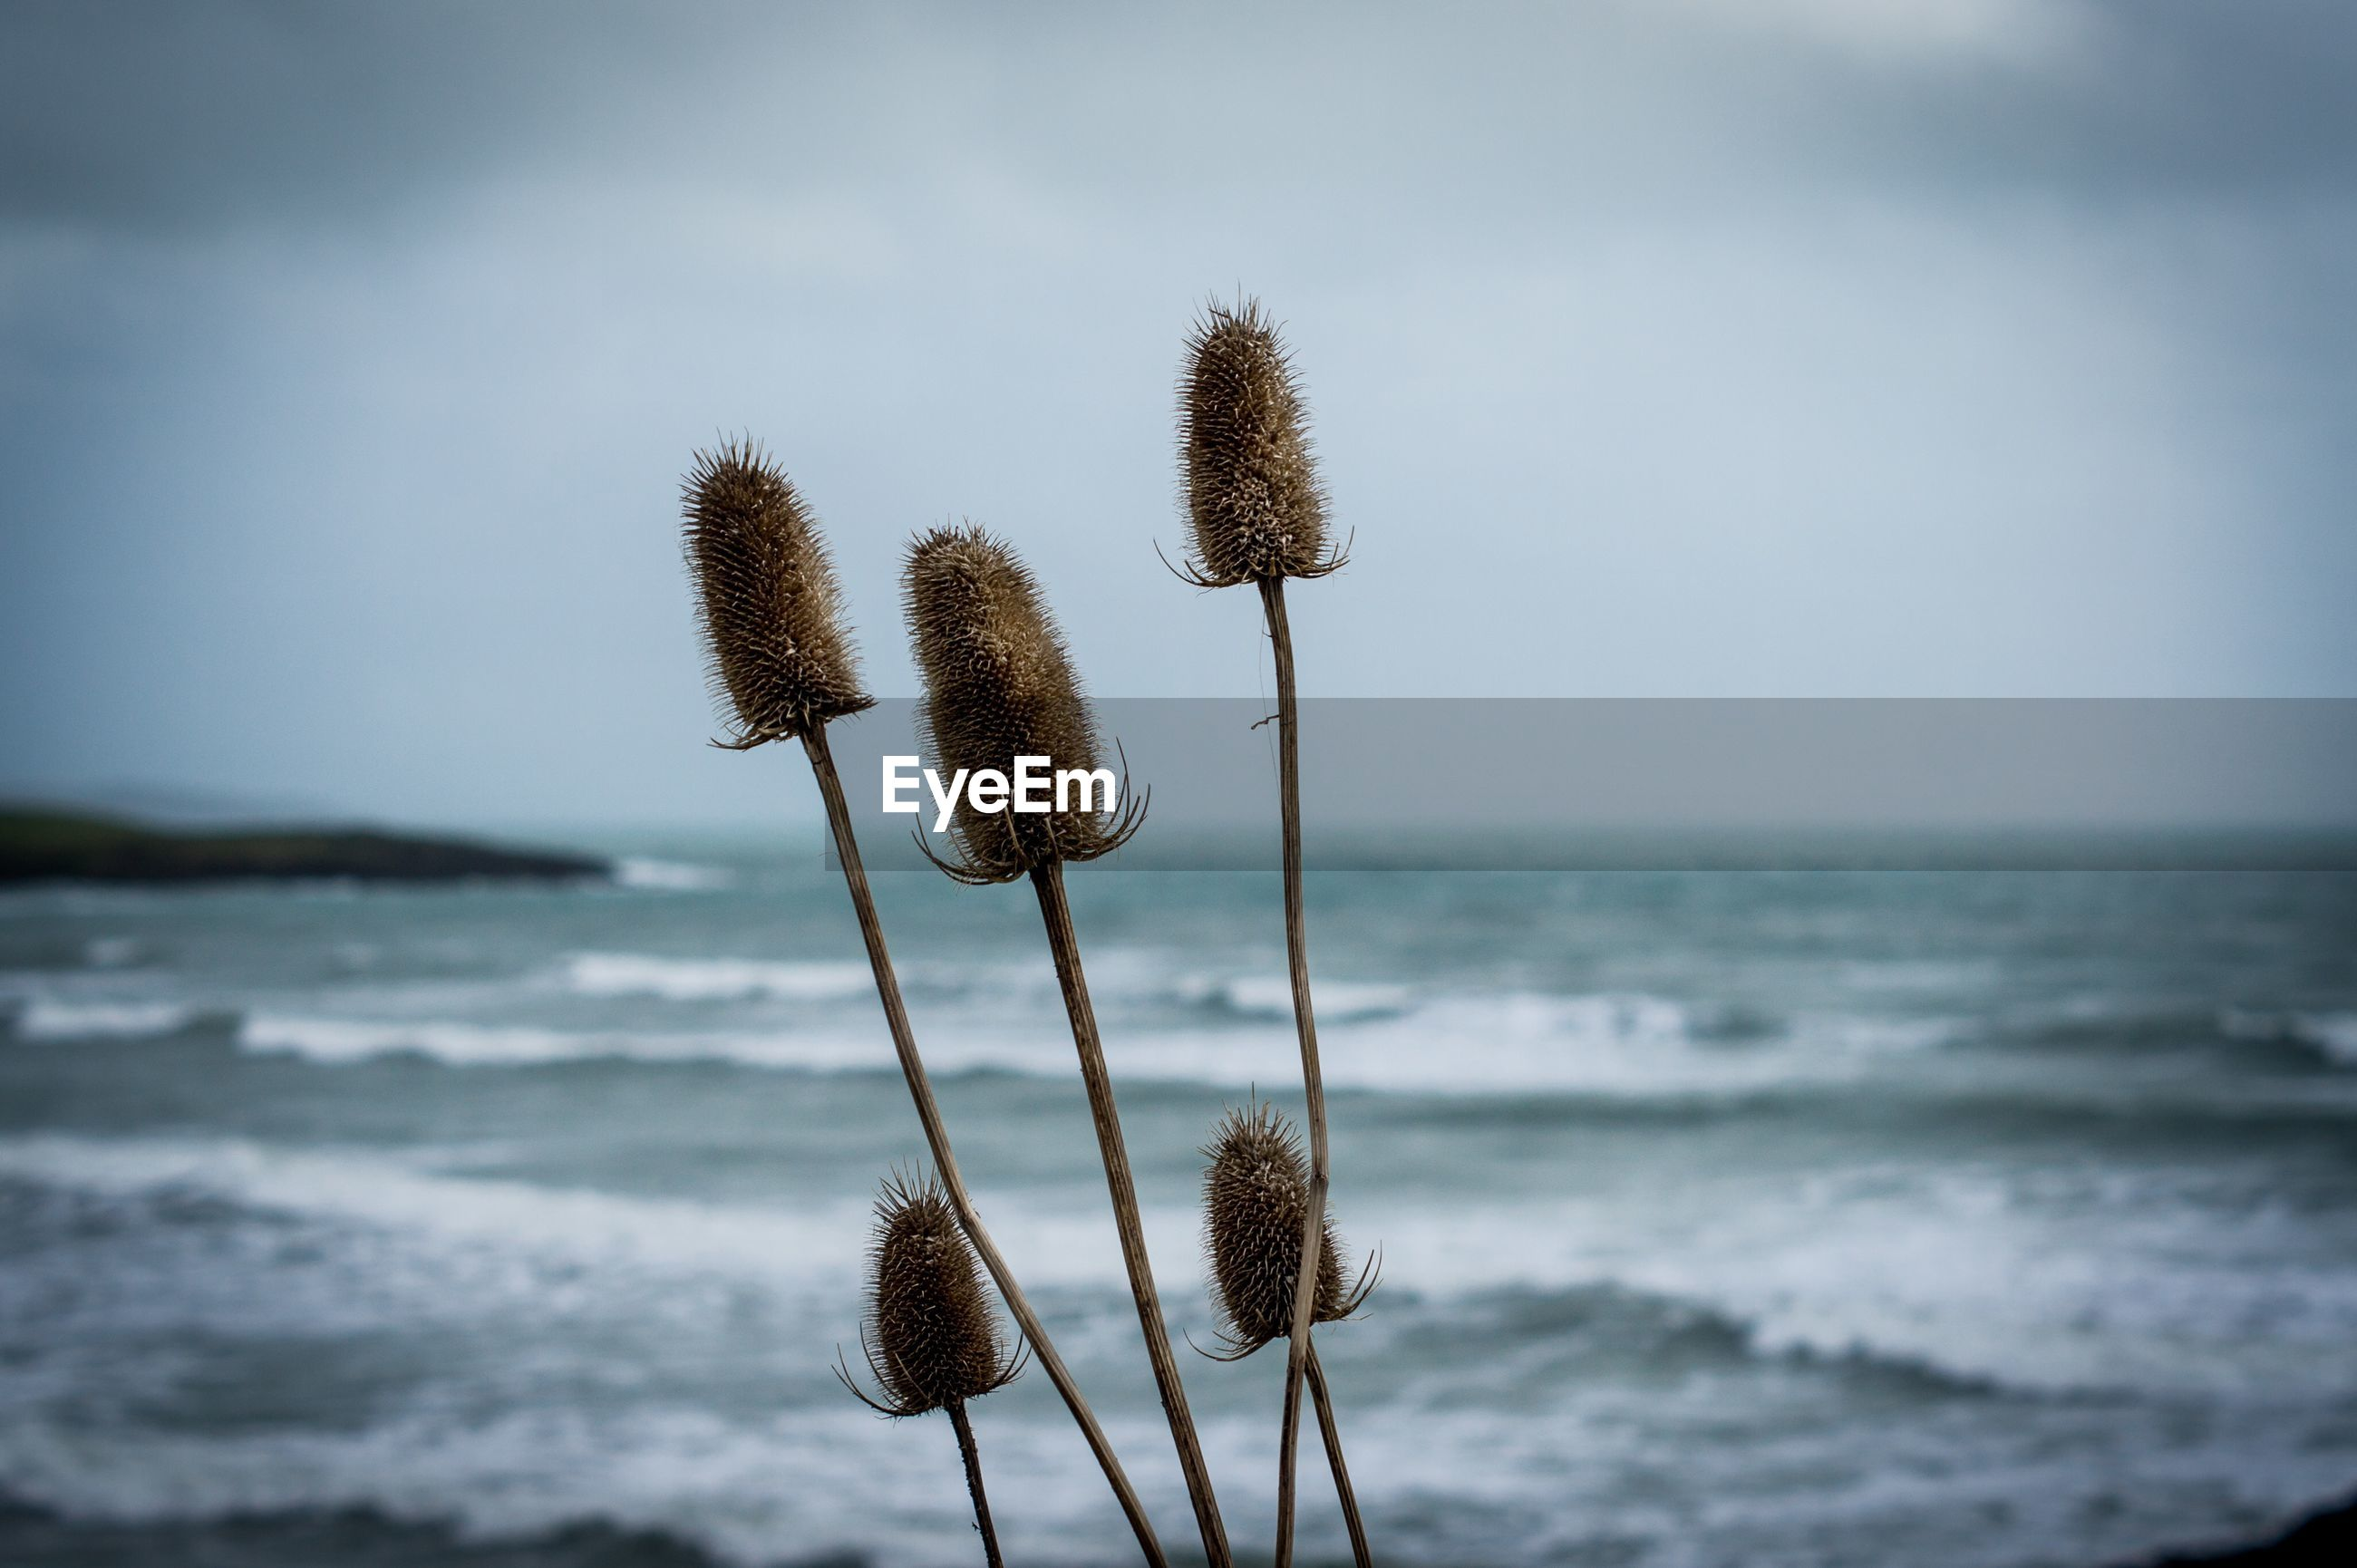 CLOSE-UP OF PLANT GROWING ON LAND AGAINST SEA